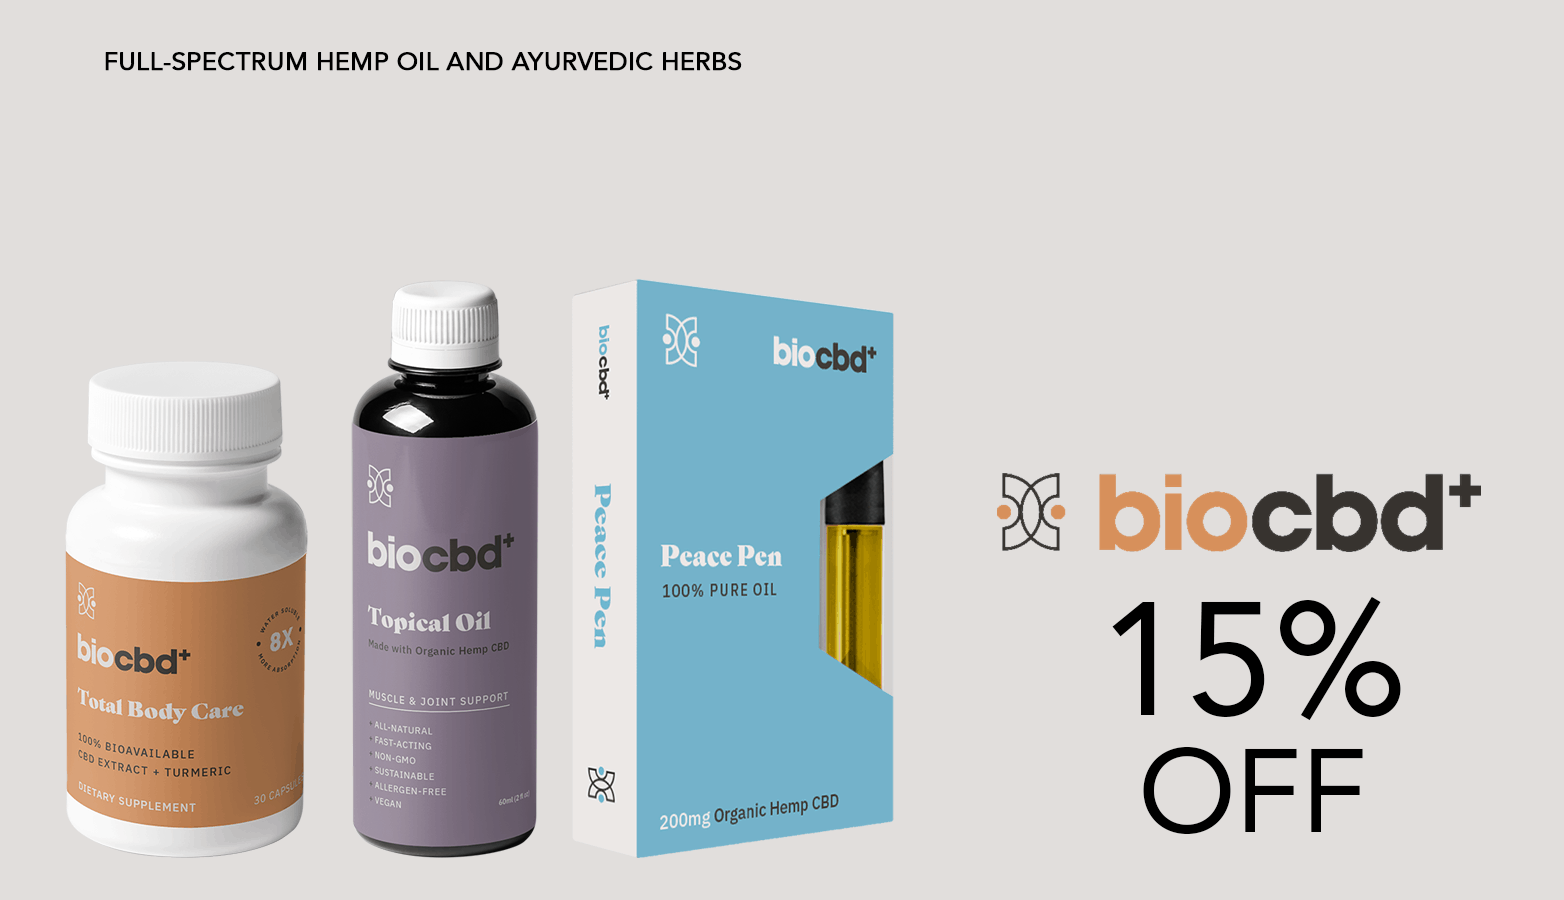 BioCBD Plus Coupon Code Offer Promo